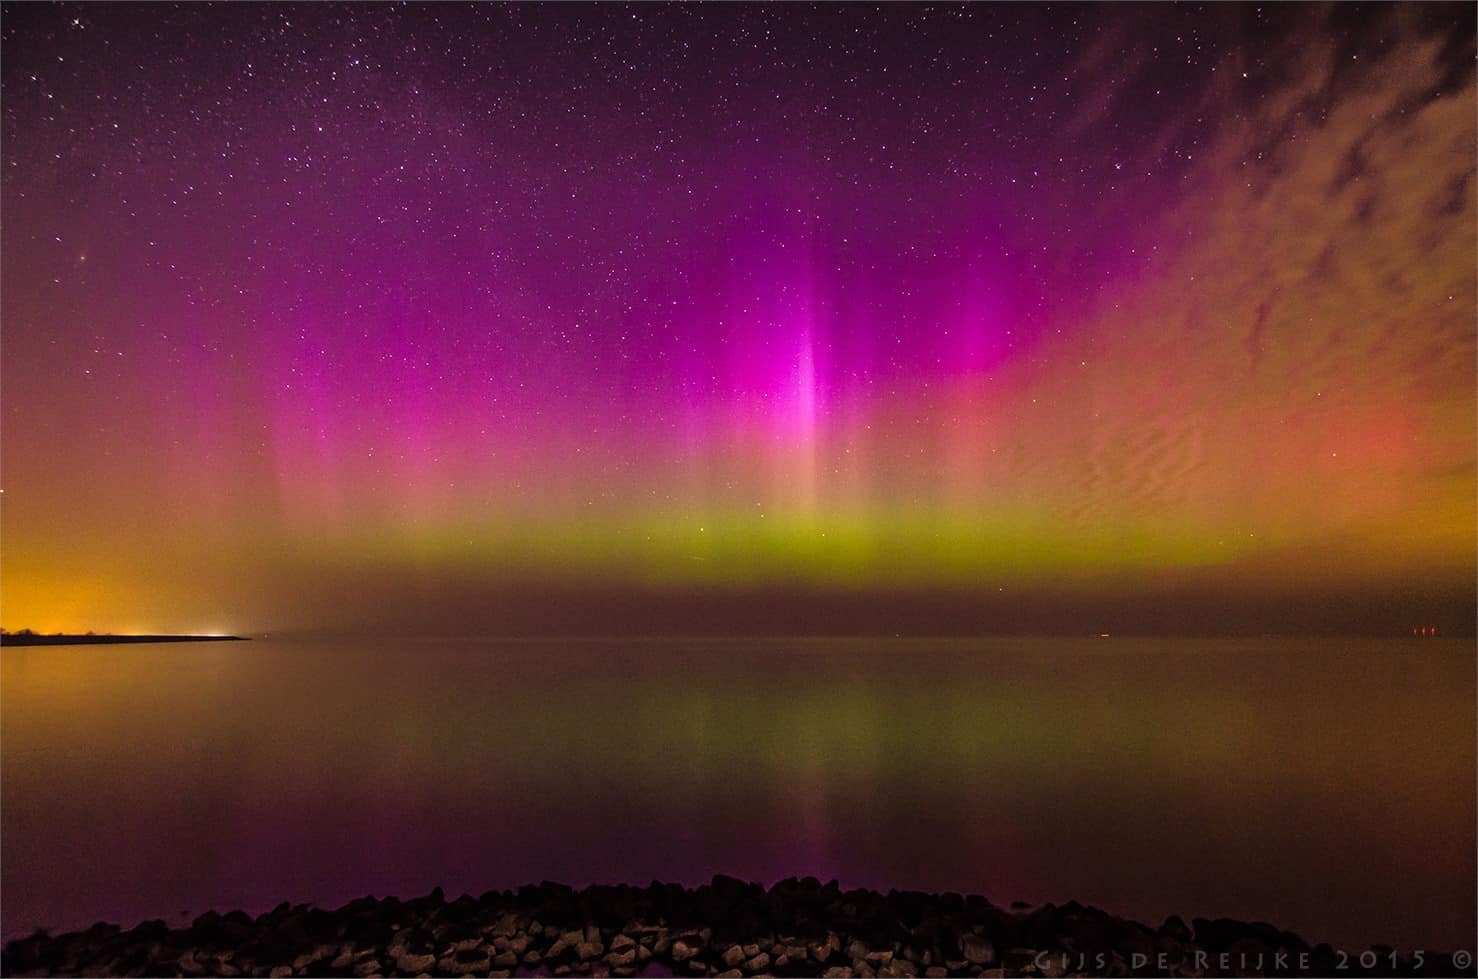 Since the Aurora Borealis pics are doing well here, I'll post another one of mine, shot in the Netherlands on March 17 of this year wink emoticon . This was the first one I actually saw with the naked eye. On average we get to see the Northern Lights this bright maybe about once per decade 'down here', so I was glad I was able to capture them. Due to cloud cover we missed the other large events of 2015.  Picture shot on the Houtribdijk between Lelystad and Enkhuizen, with a Nikon D7000 and Tokina 11-16mm f2.8 DX II, at 11mm, ISO800, 15 sec. and f2.8.